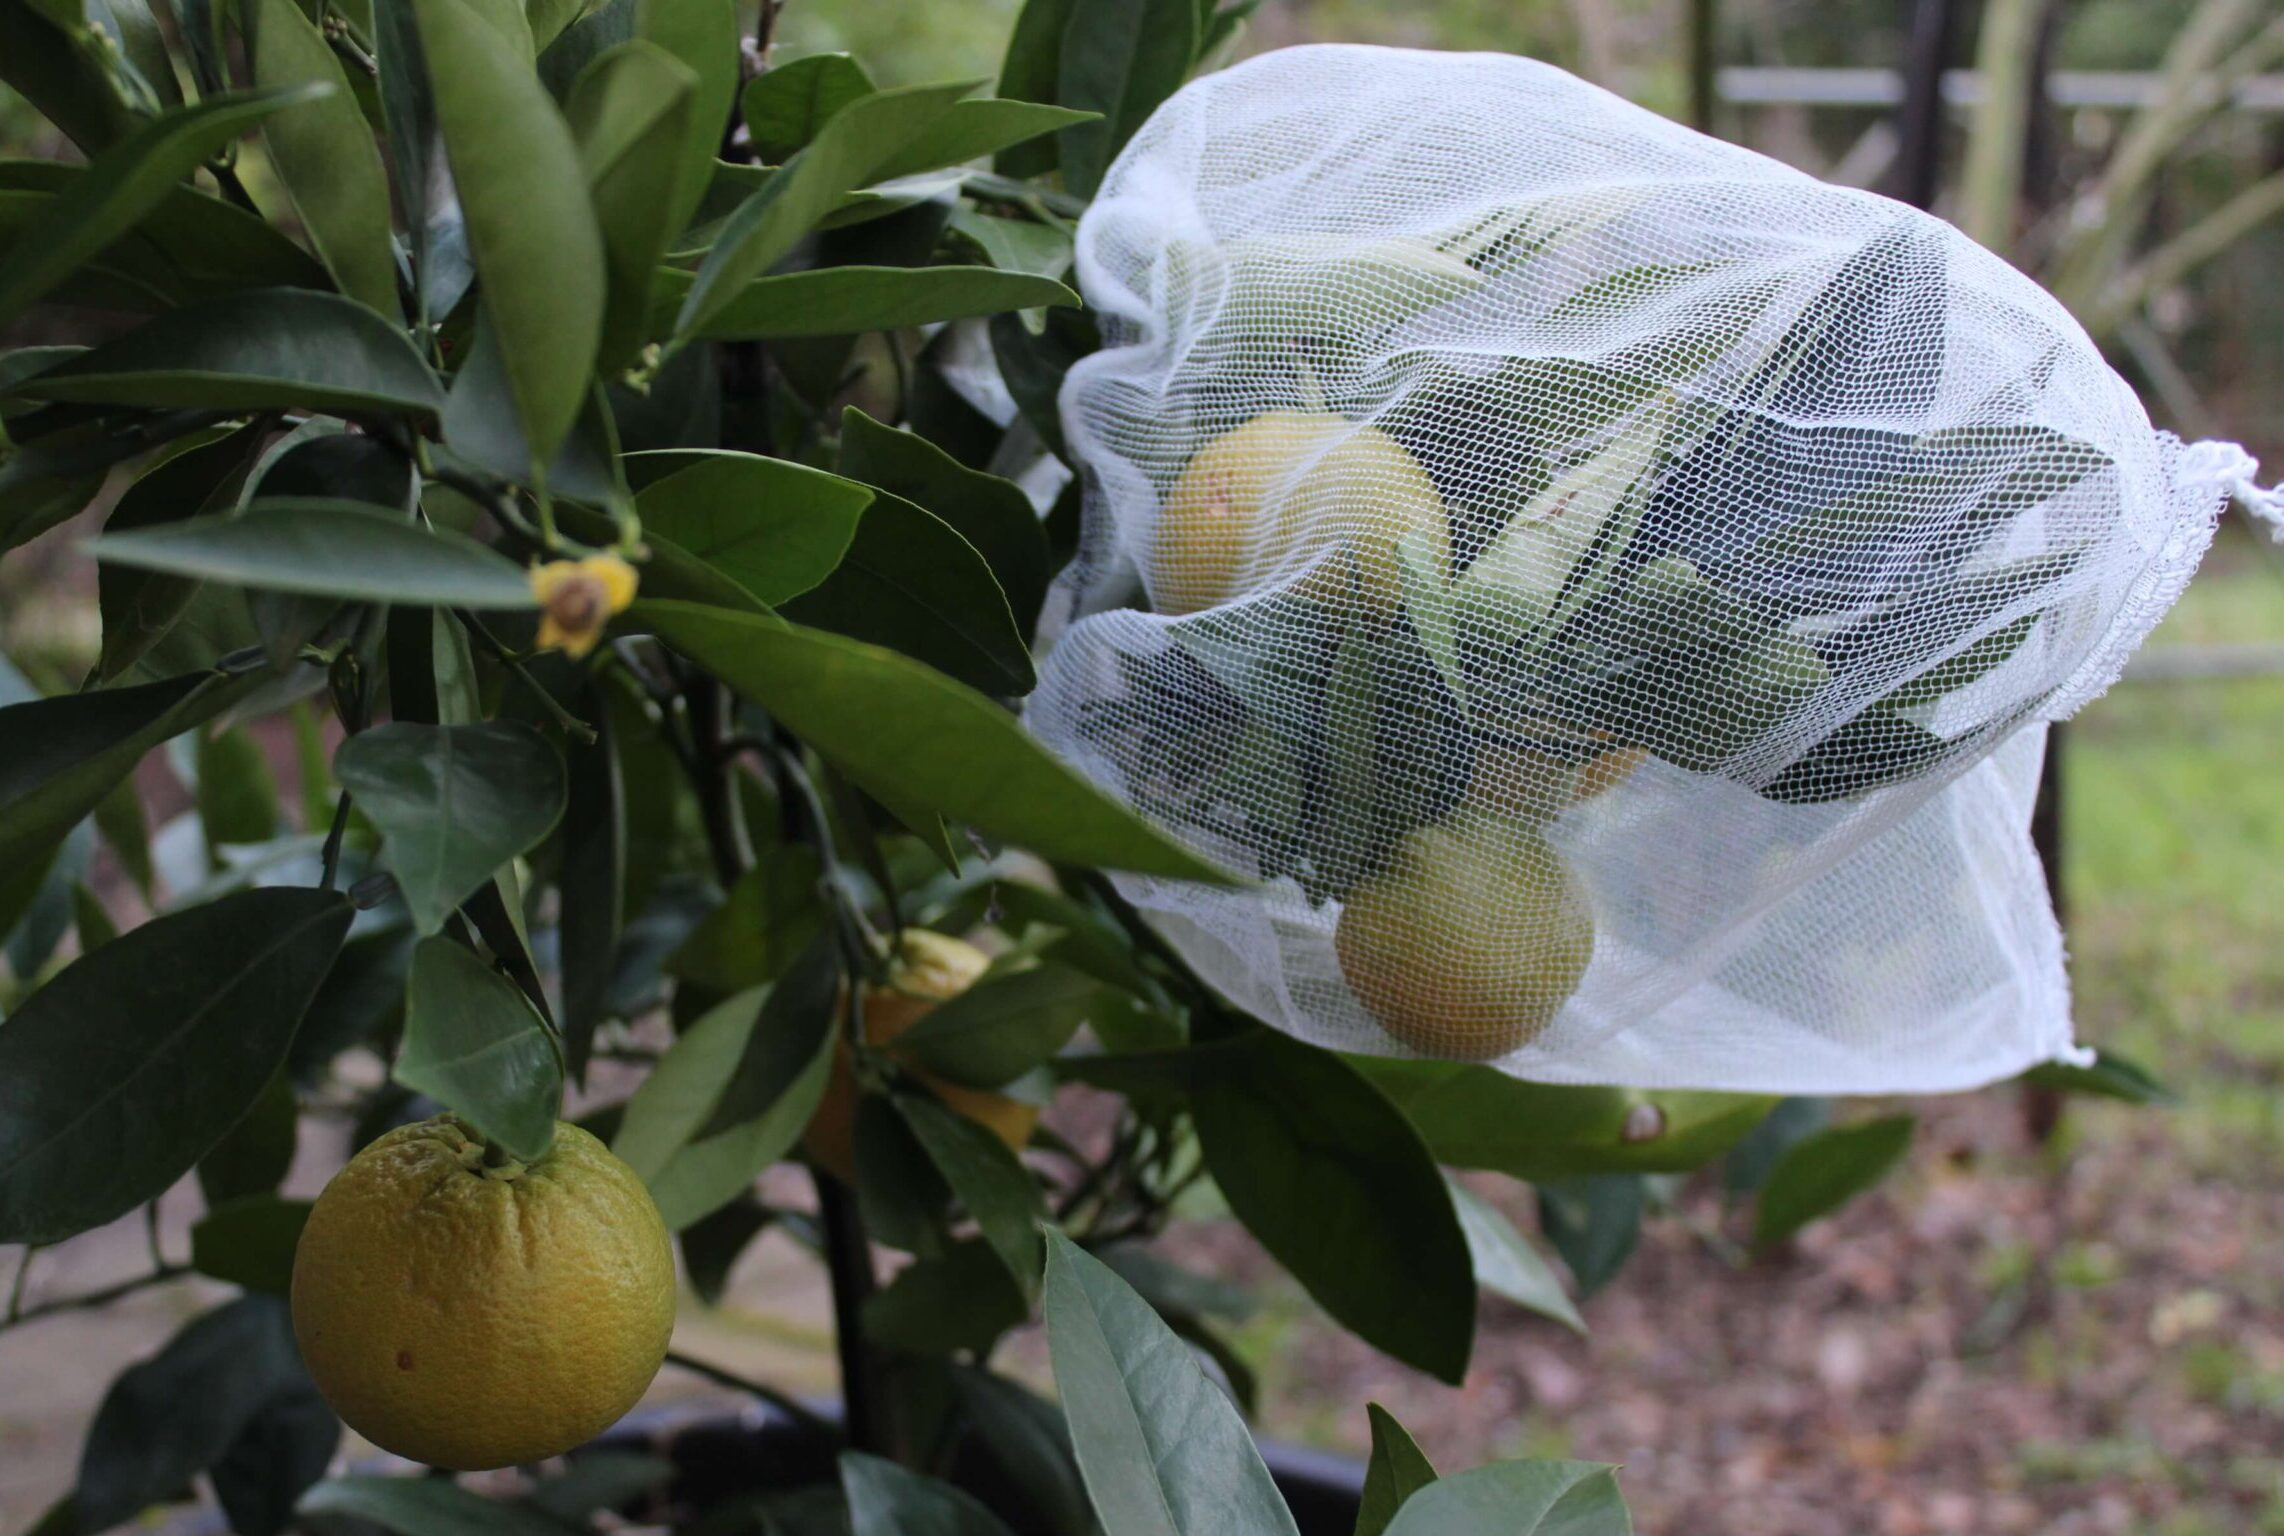 Vegetable Fruit protection bags